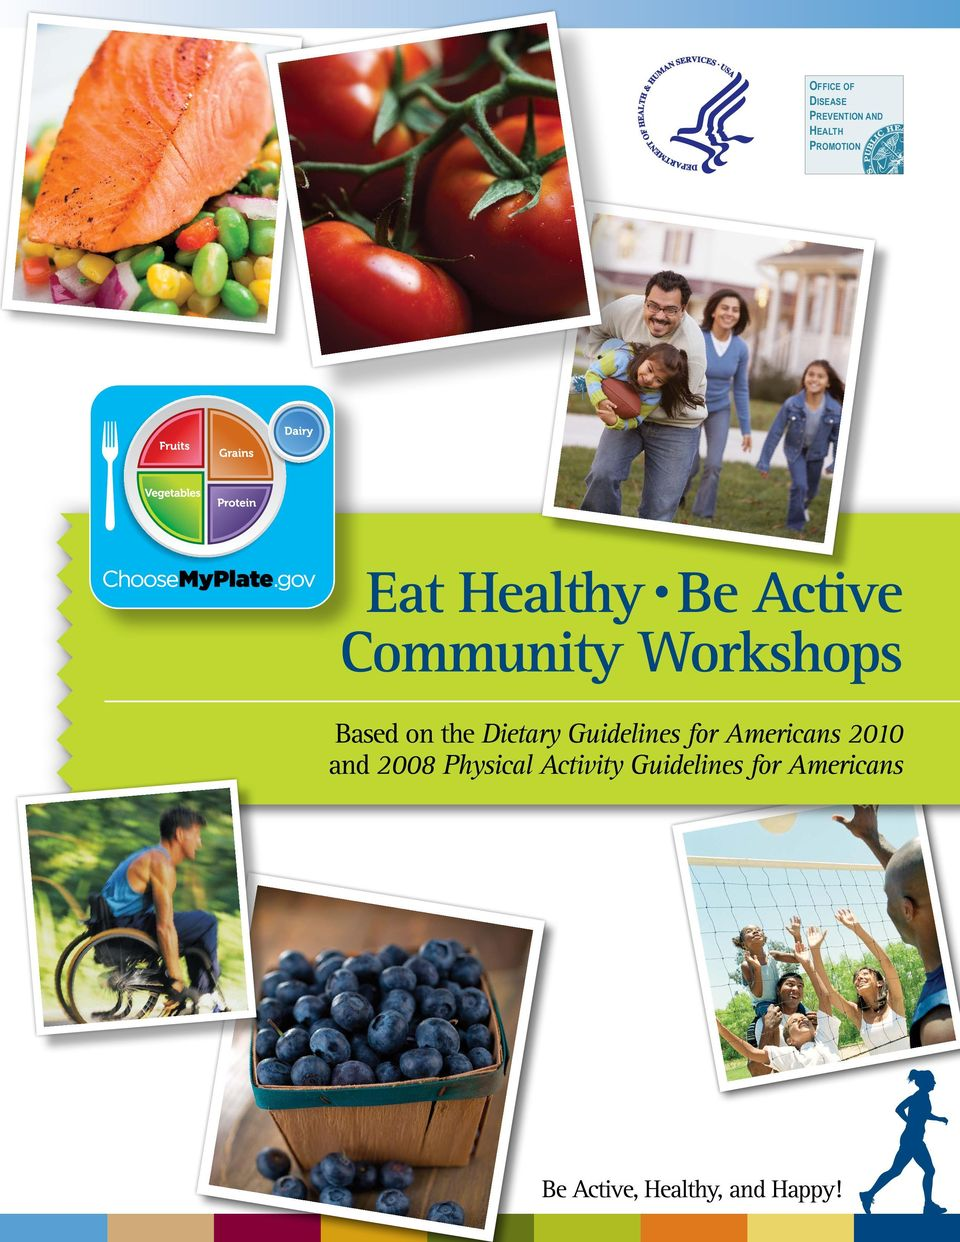 Dietary Guidelines for Americans 2010 and 2008 Physical